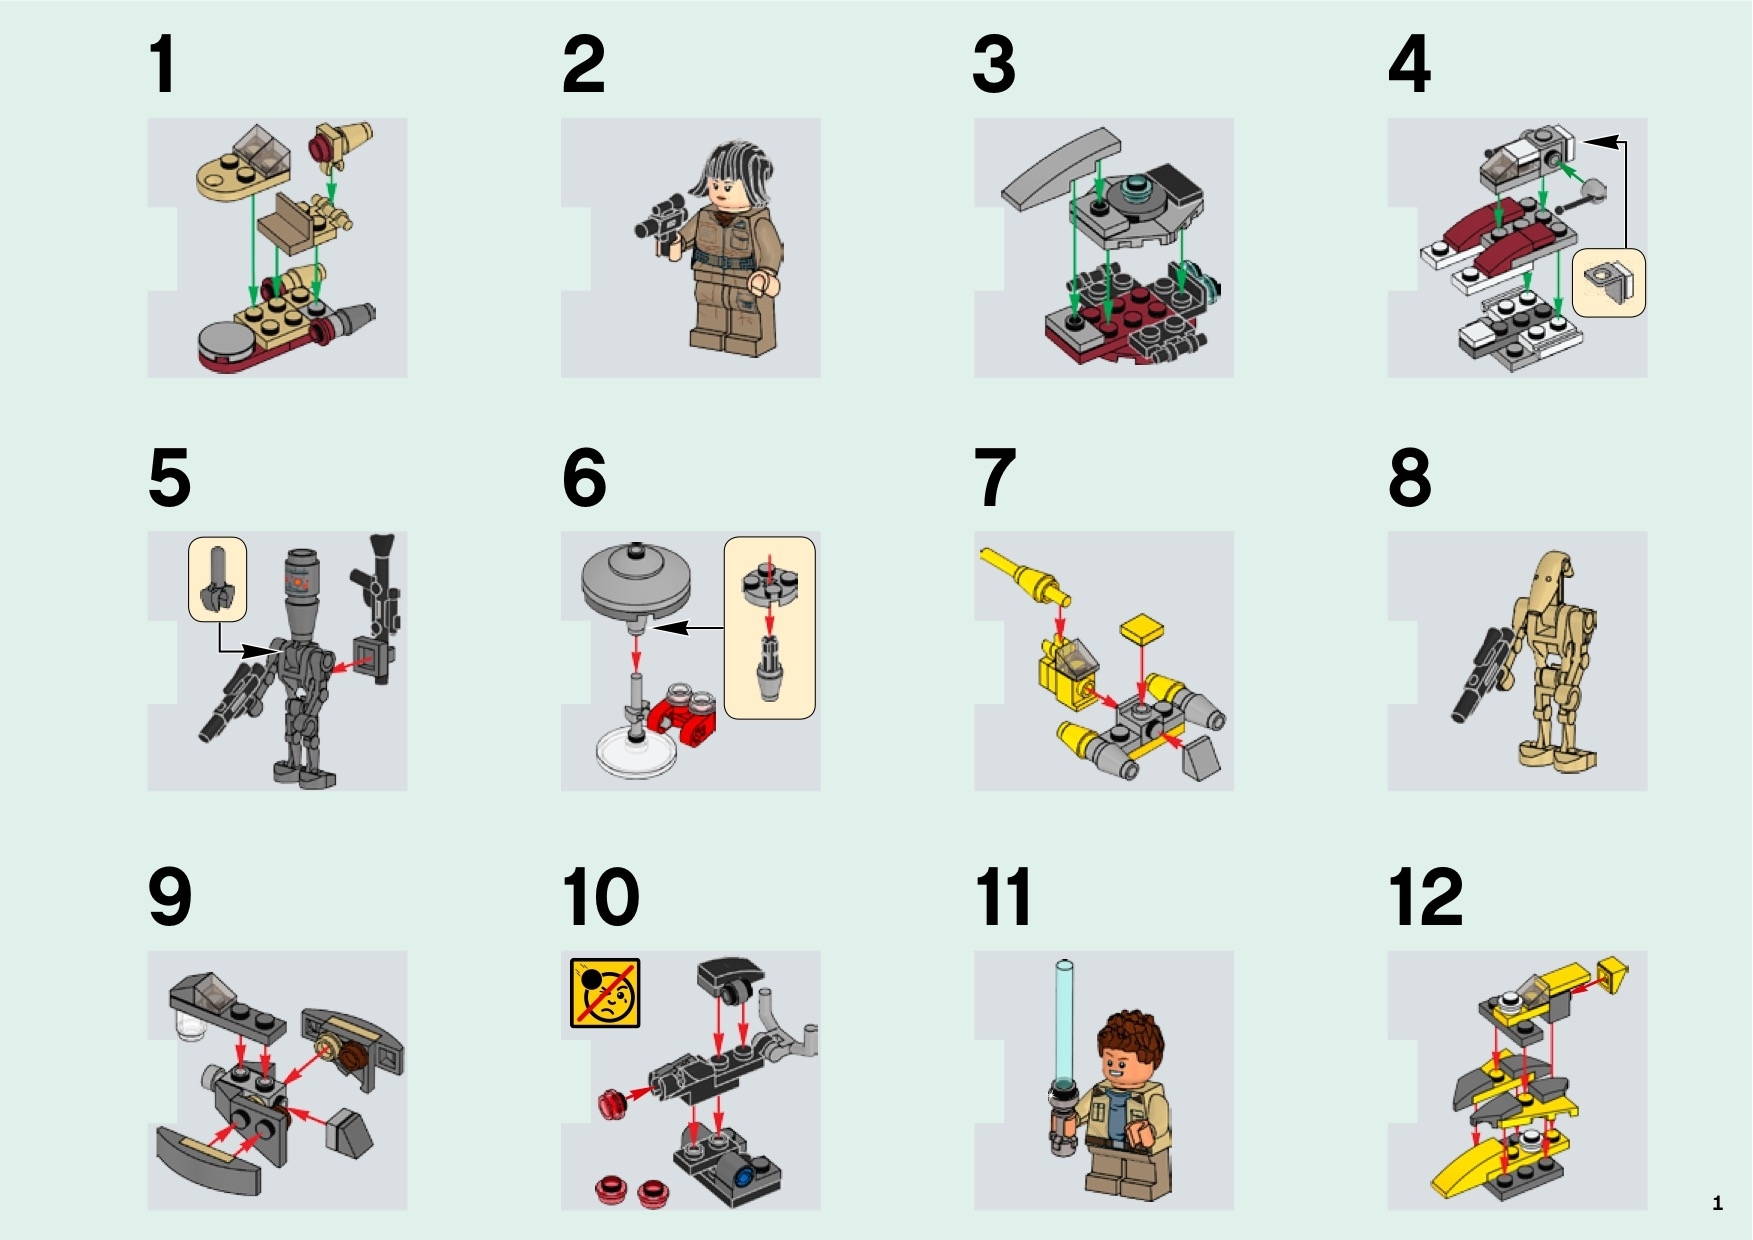 Lego 75213 Star Wars Advent Calendar Instructions, Star Wars in Lego Star Wars 2018 Advent Calendar Instructions